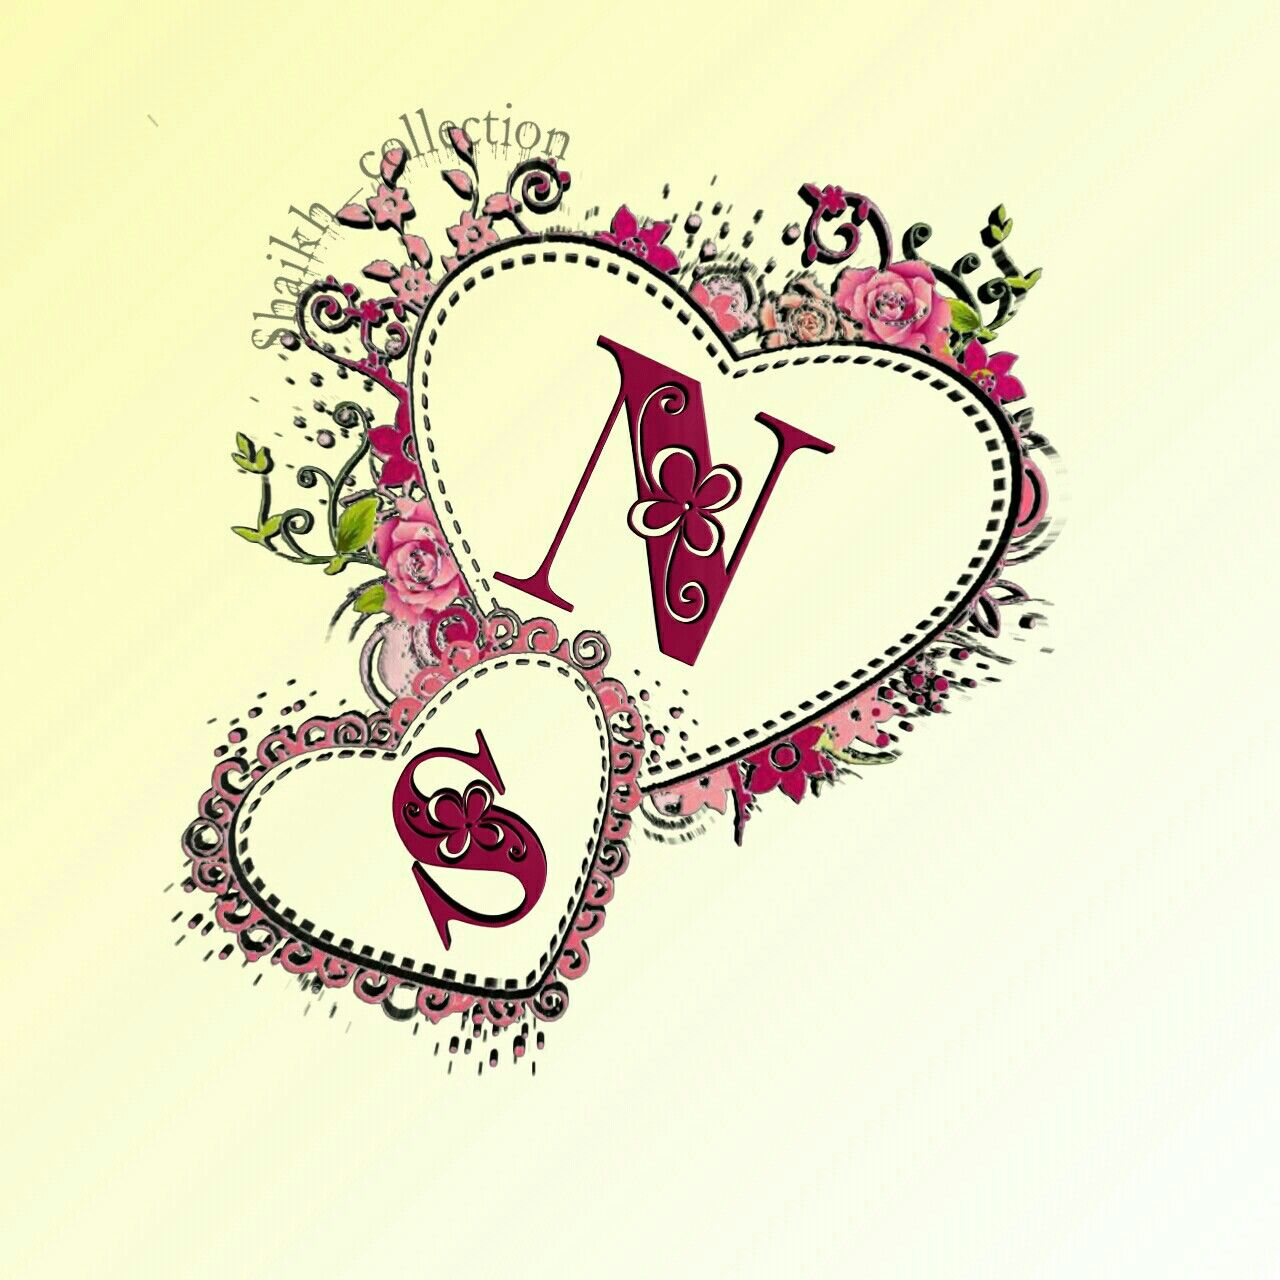 Pin By N Shaikh On N S S Letter Images S Love Images Cute Love Images